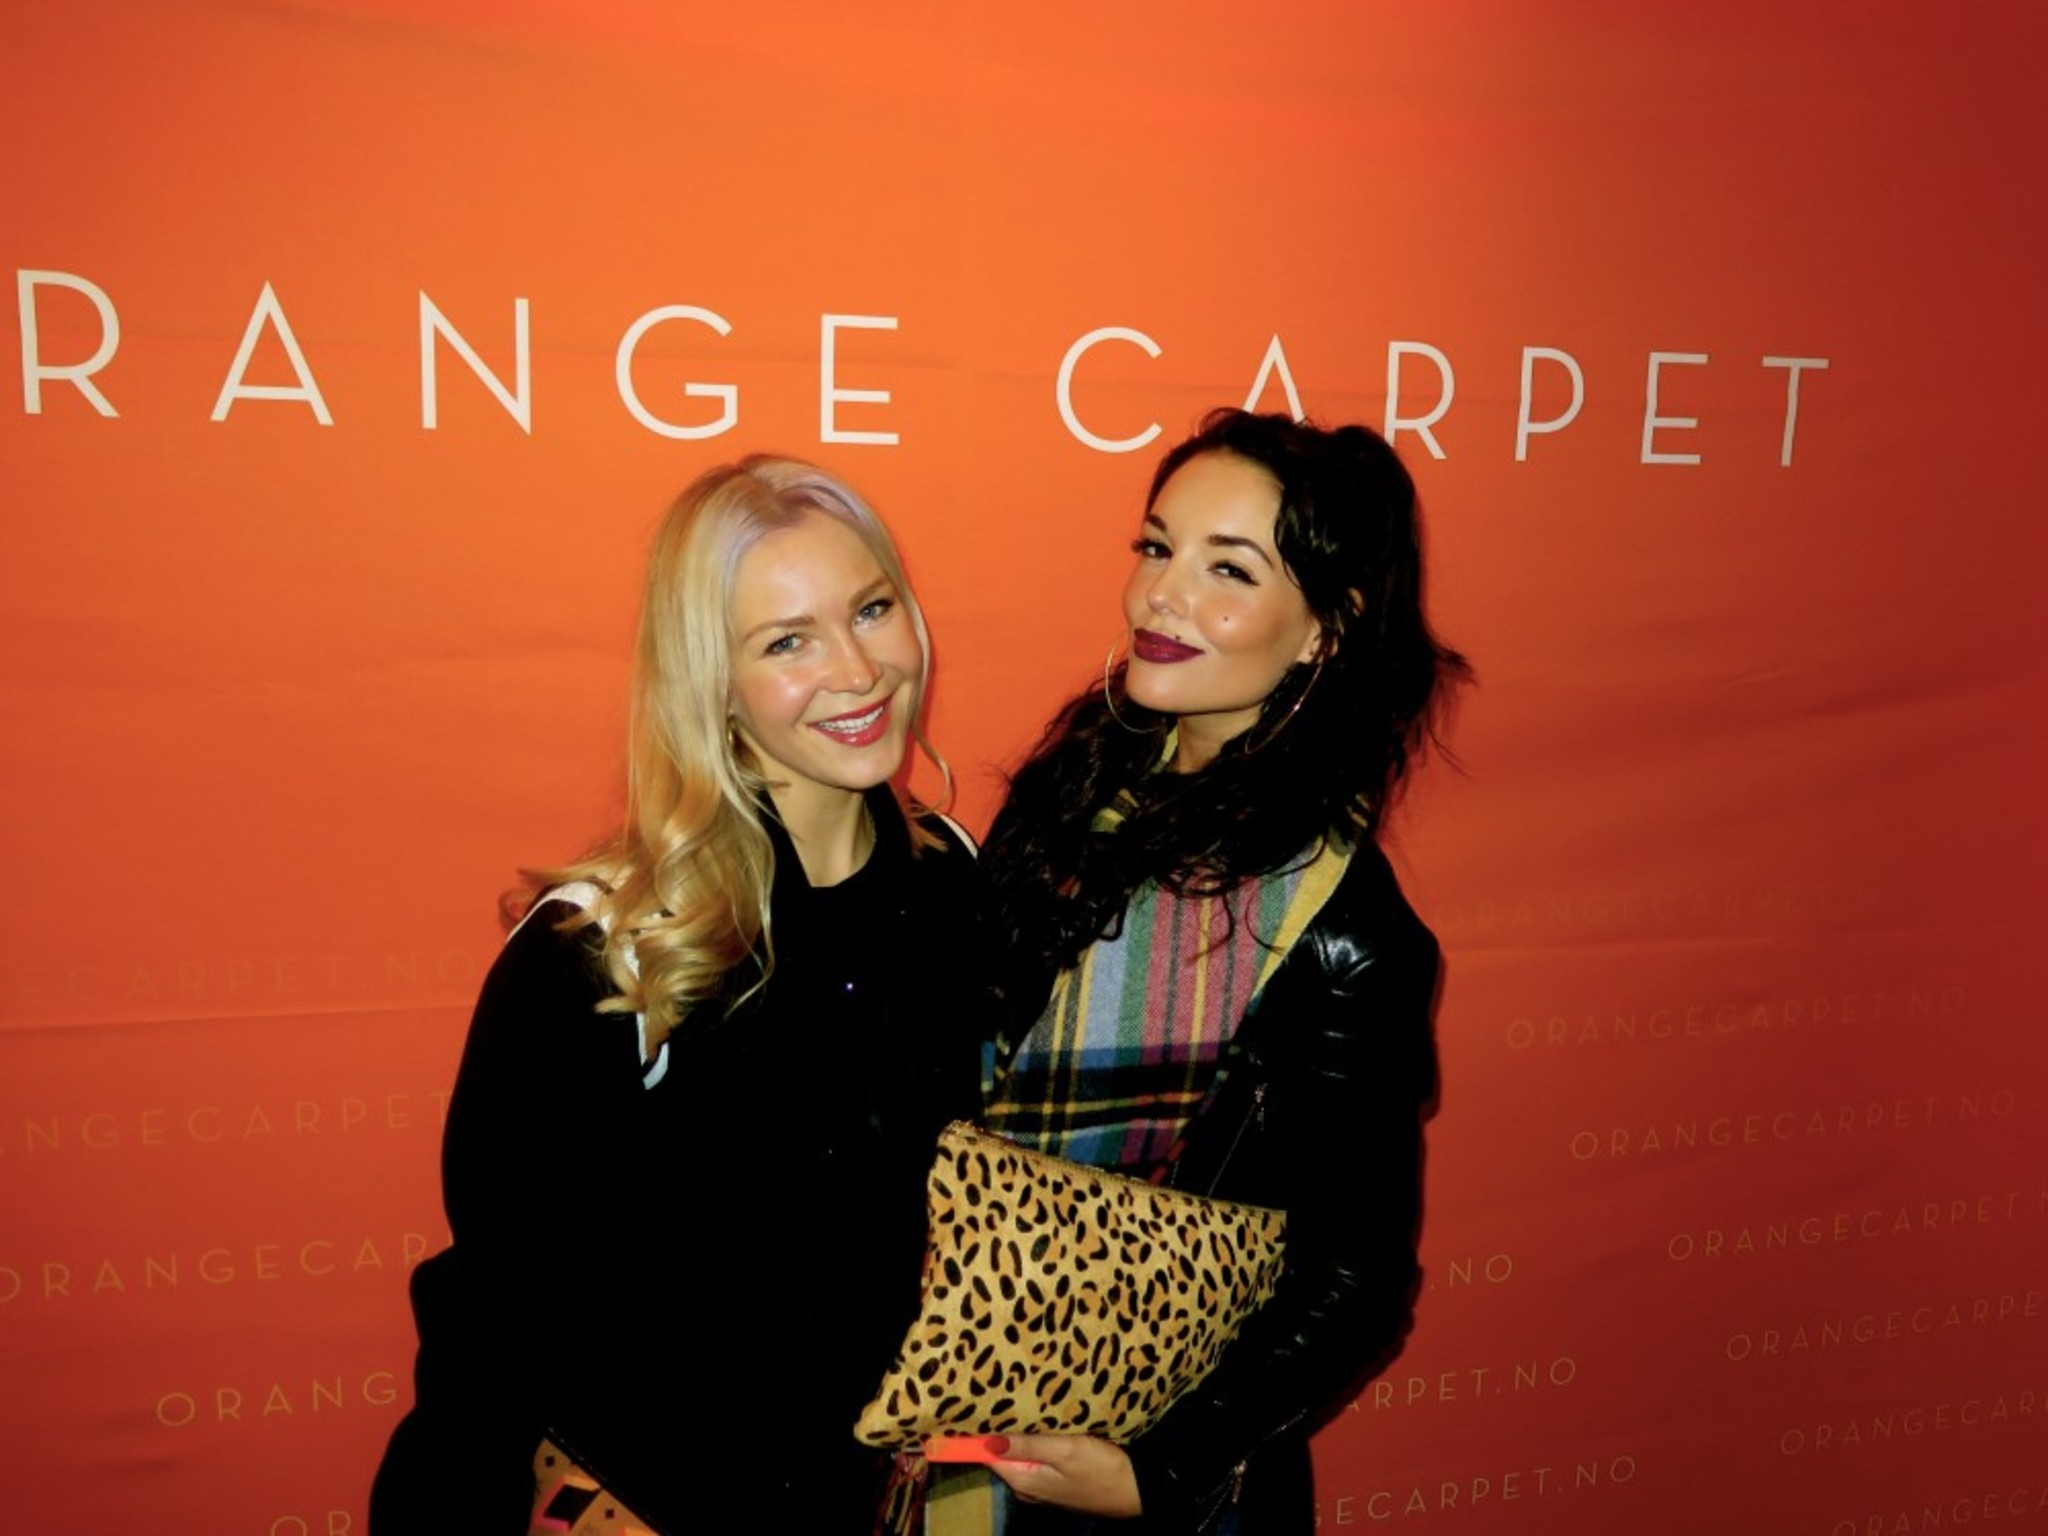 Last Friday my hubby played at Orange Carpet event and me and Triana took a peek and mingled.  Later on, it was all about Katy Perry and her concert at Telenor Arena.